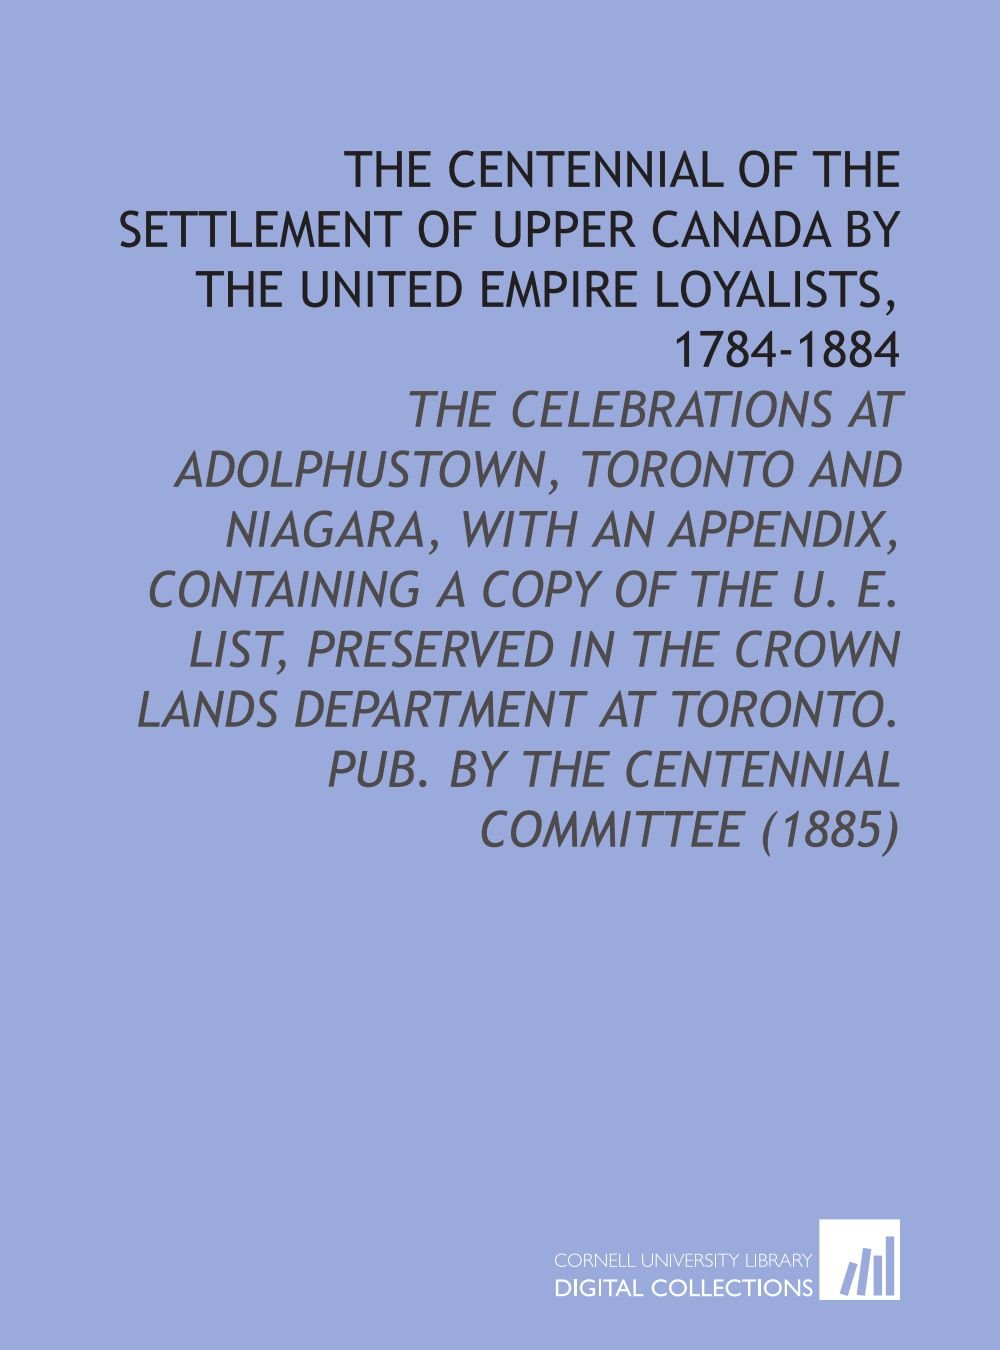 The Centennial of the Settlement of Upper Canada by the United Empire Loyalists, 1784-1884: The Celebrations at Adolphustown, Toronto and Niagara, ... Pub. By the Centennial Committee (1885) ebook